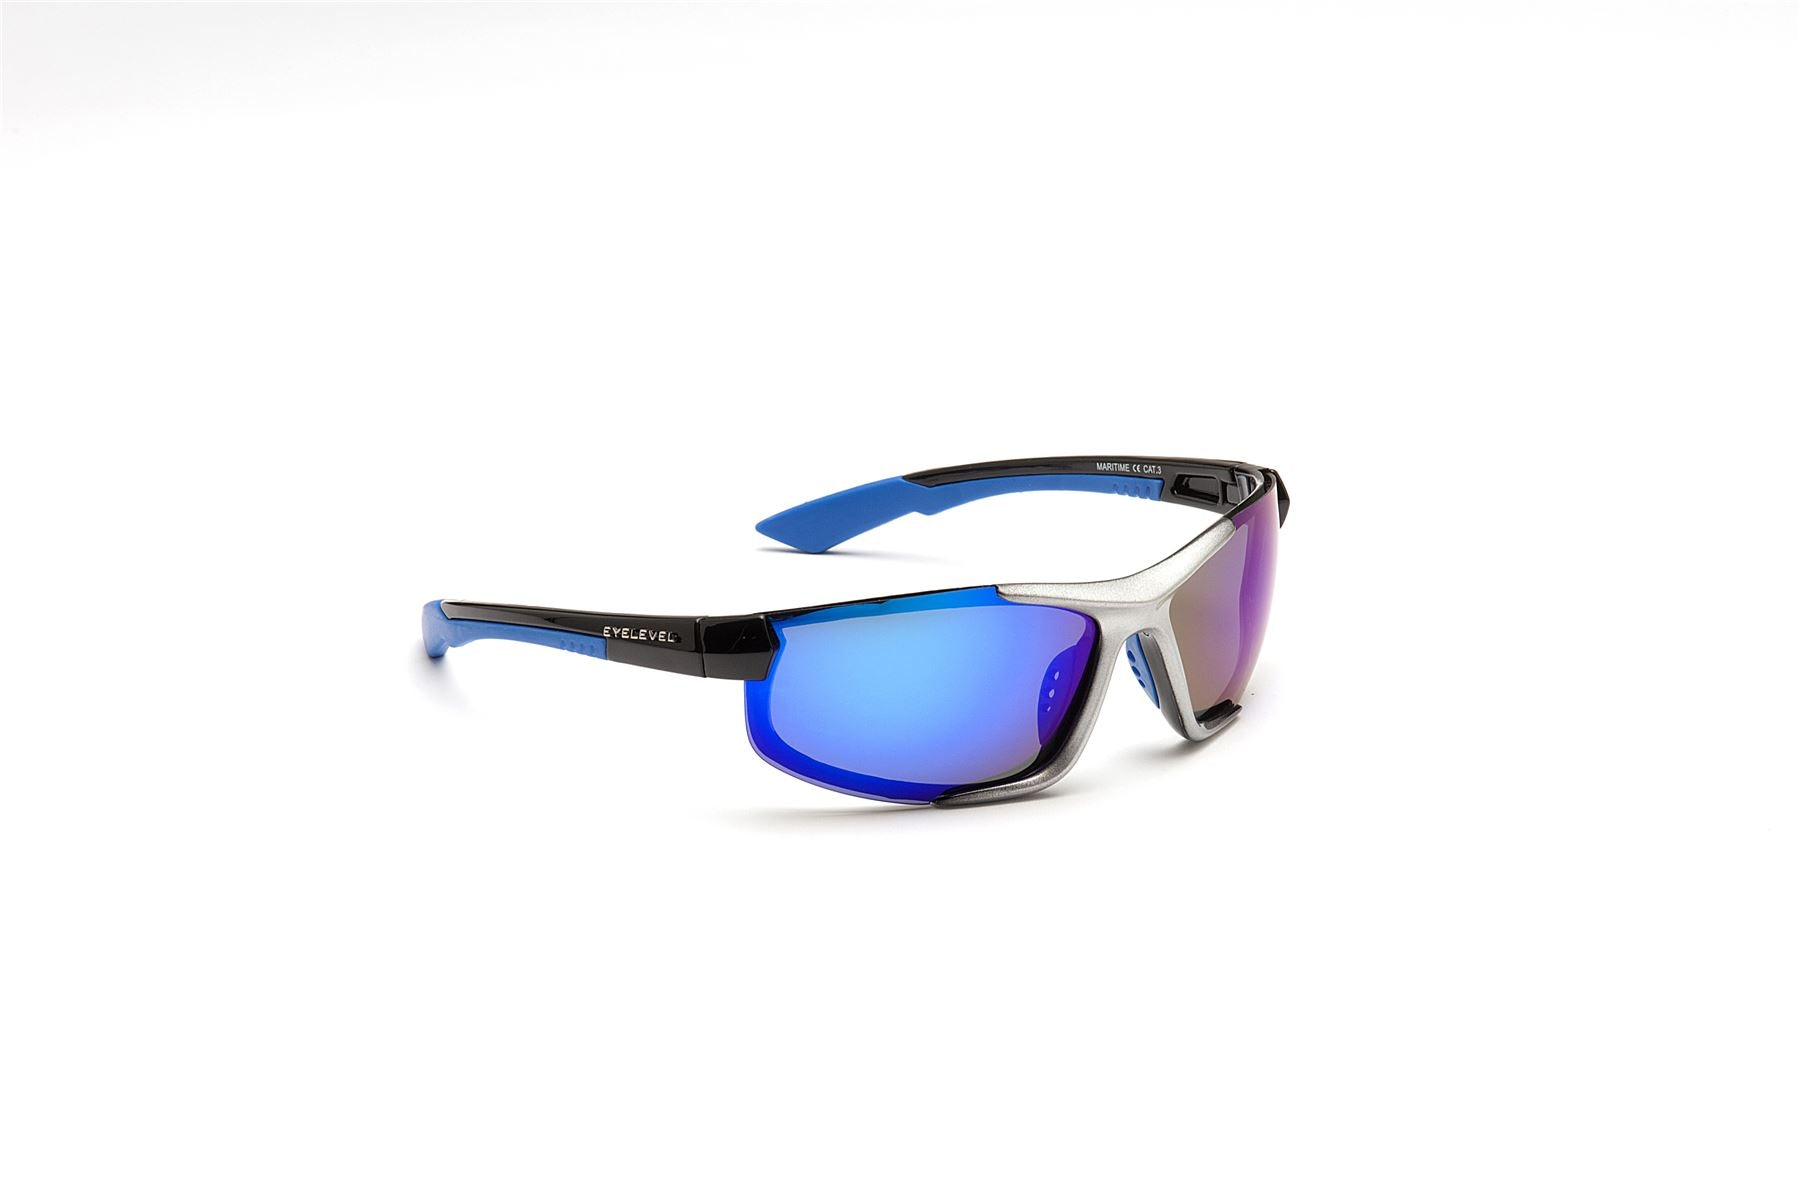 Maritime Sunglasses with Blue Lens